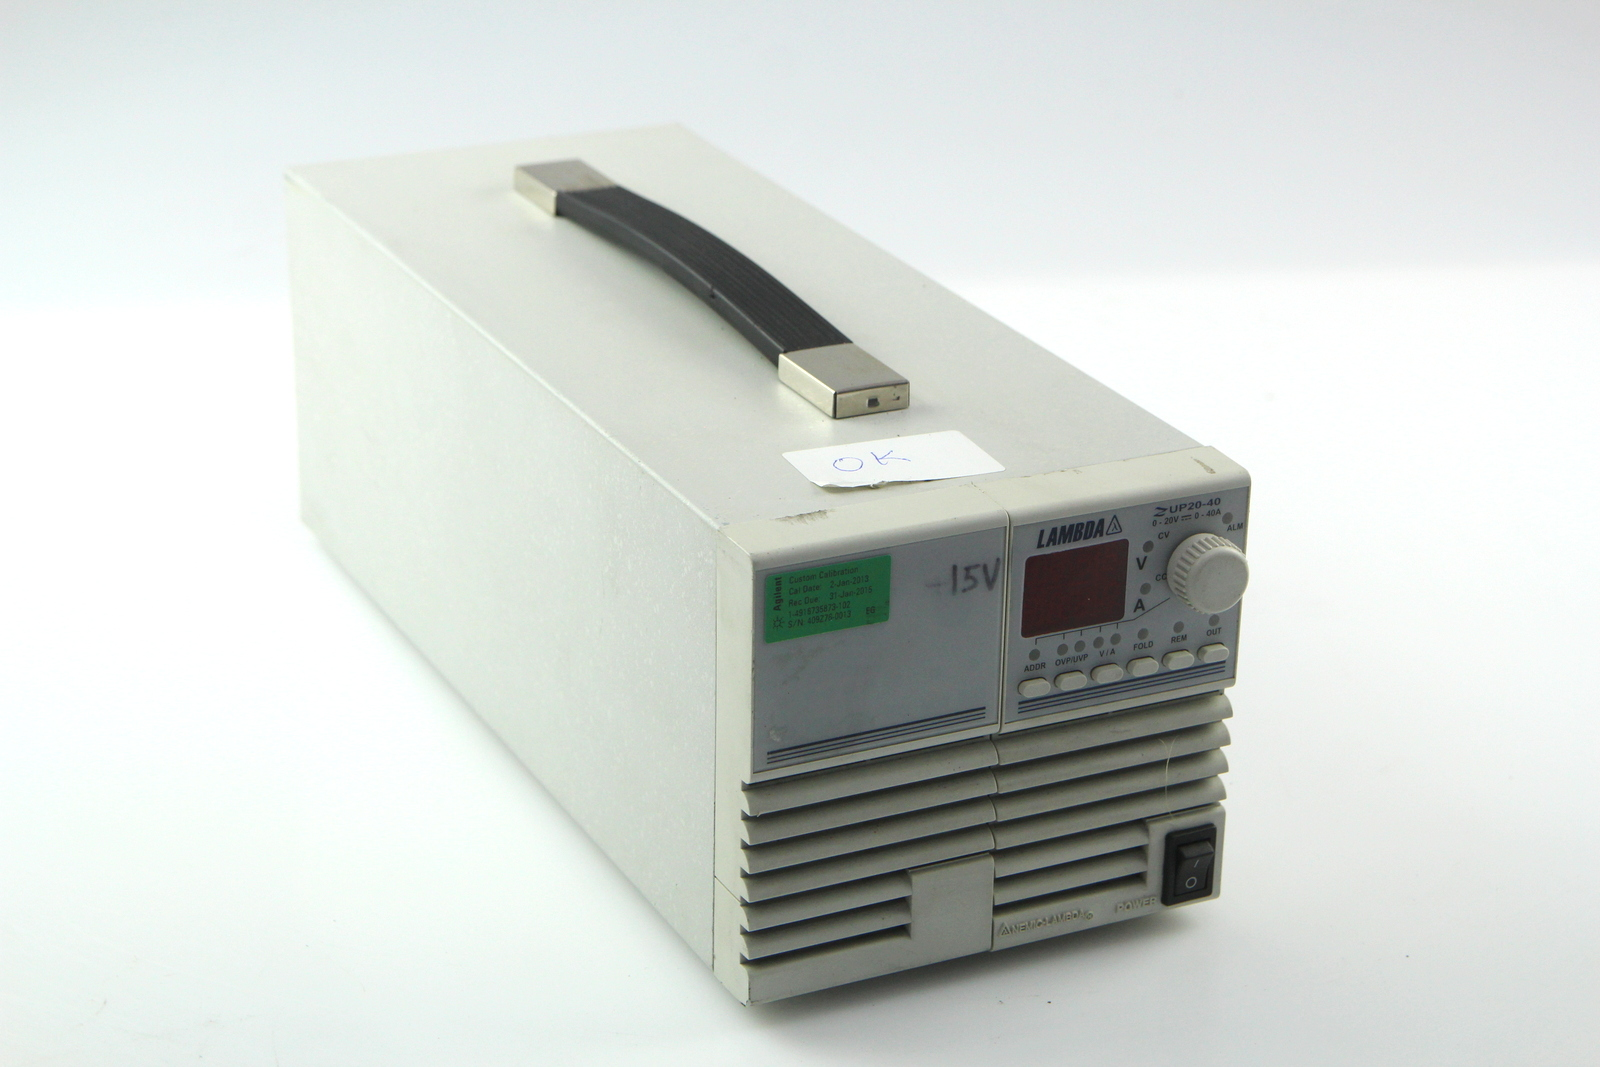 tdk lambda zup20 40 20v 40a ac dc converter power supply ebay rh ebay ca tdk lambda zup user manual TDK-Lambda Singapore